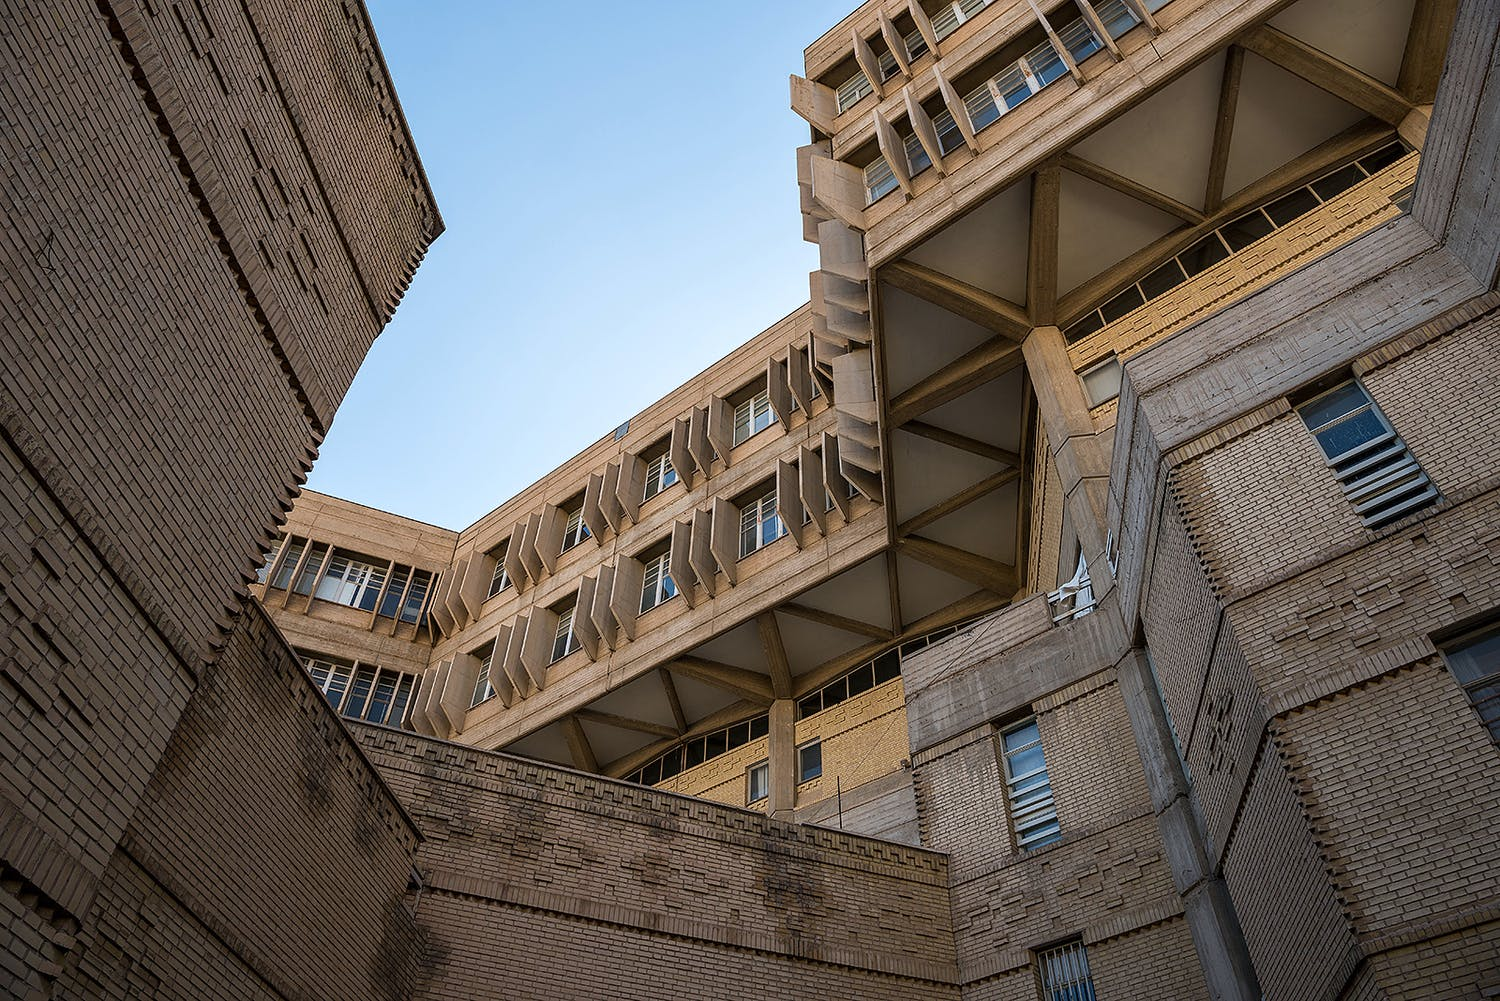 As Brutalism faces an uncertain future, this exhibition at DAM calls ...